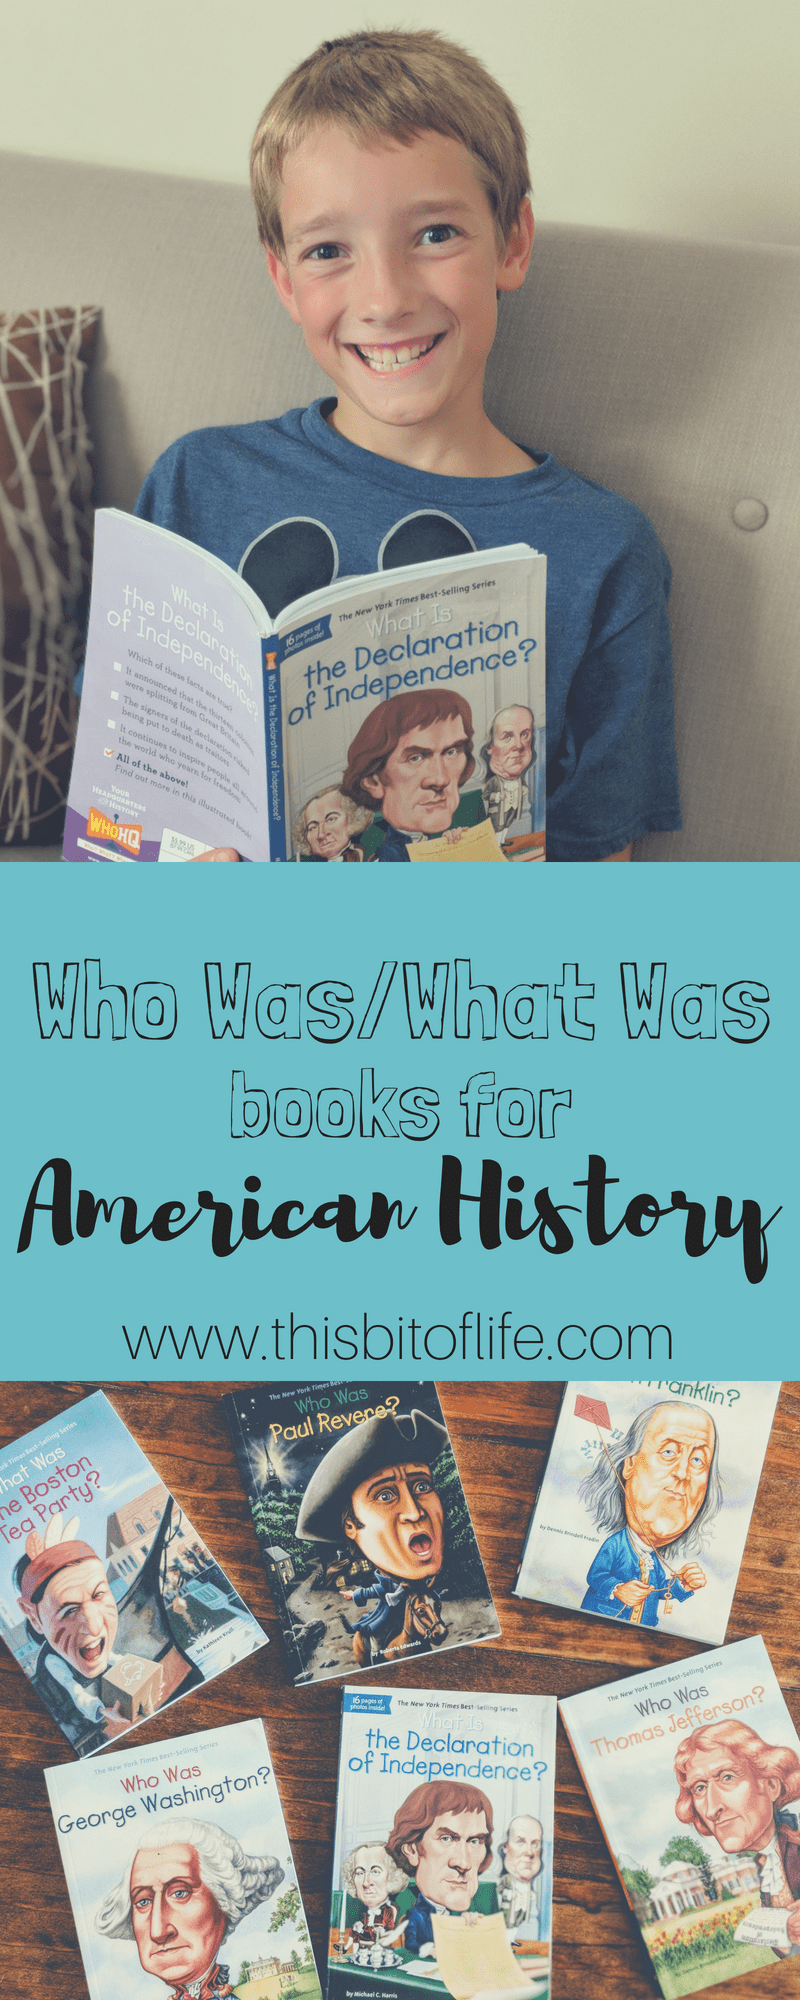 Using Who Was Book Series for American History. This was a FUN history curriculum for my kids! #Americanhistory #whowasbooks #homeschoolhistory